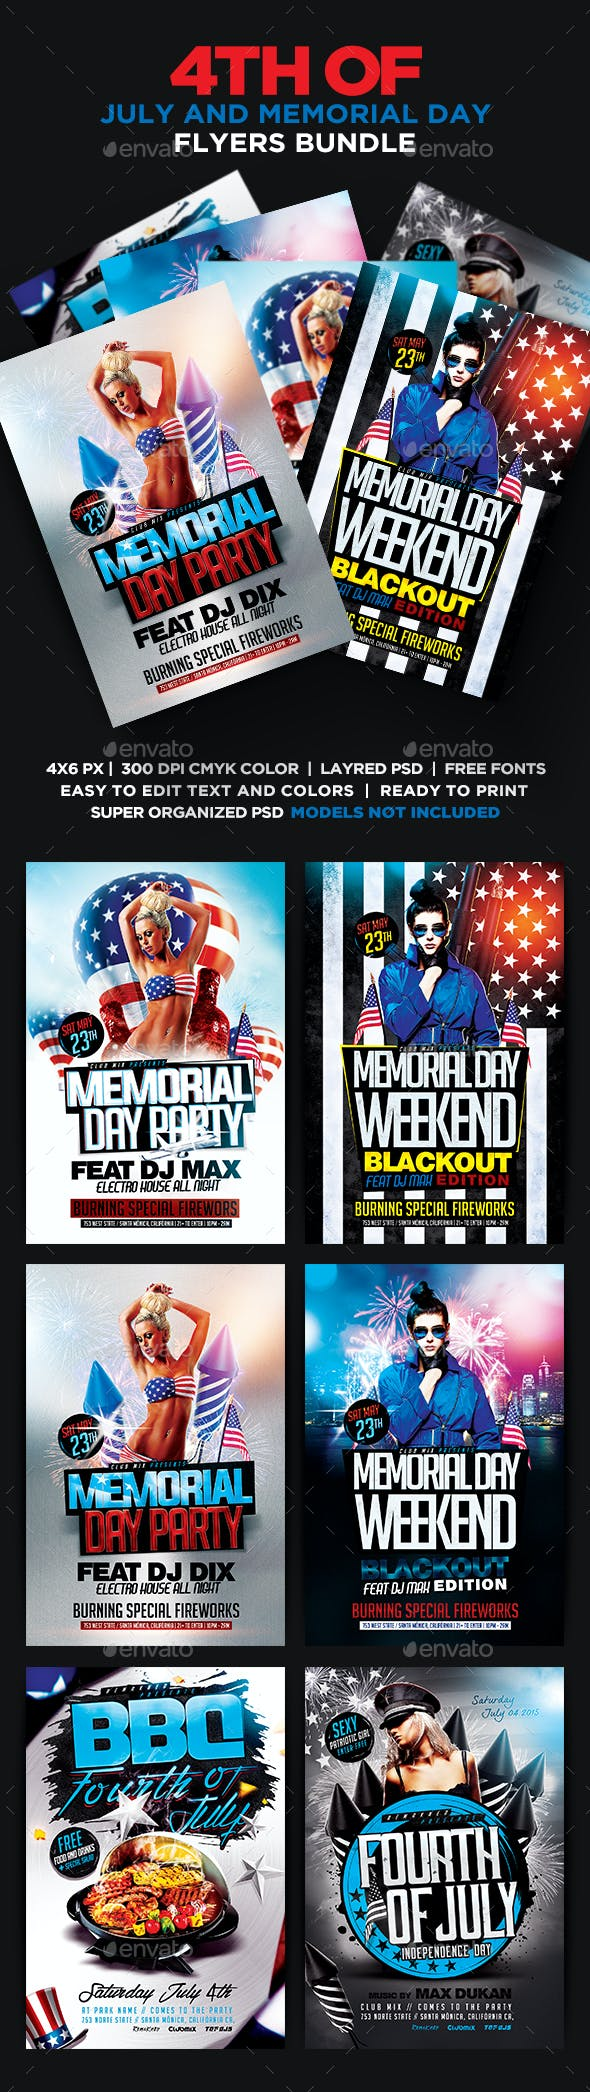 4th of july and memorial day flyers bundle psd by remakned